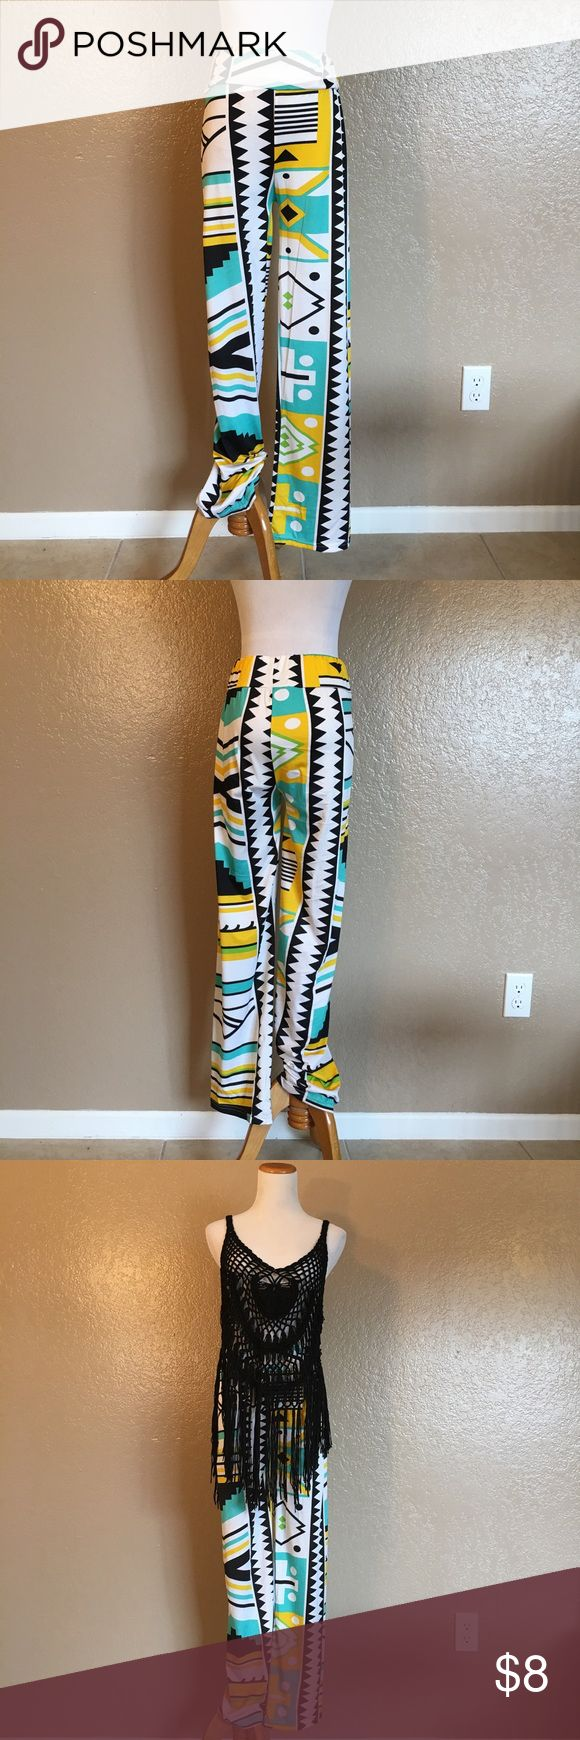 Aztec Print Pants NWOT Size small. NWOT || Bundle outfit for Buy1Get1 50% off!!  Feel free to message me with any questions or for bundle discount inquiries. Prices are negotiable, all reasonable offers are accepted! Thanks for viewing my items!  -Styles by Class A Pants Trousers